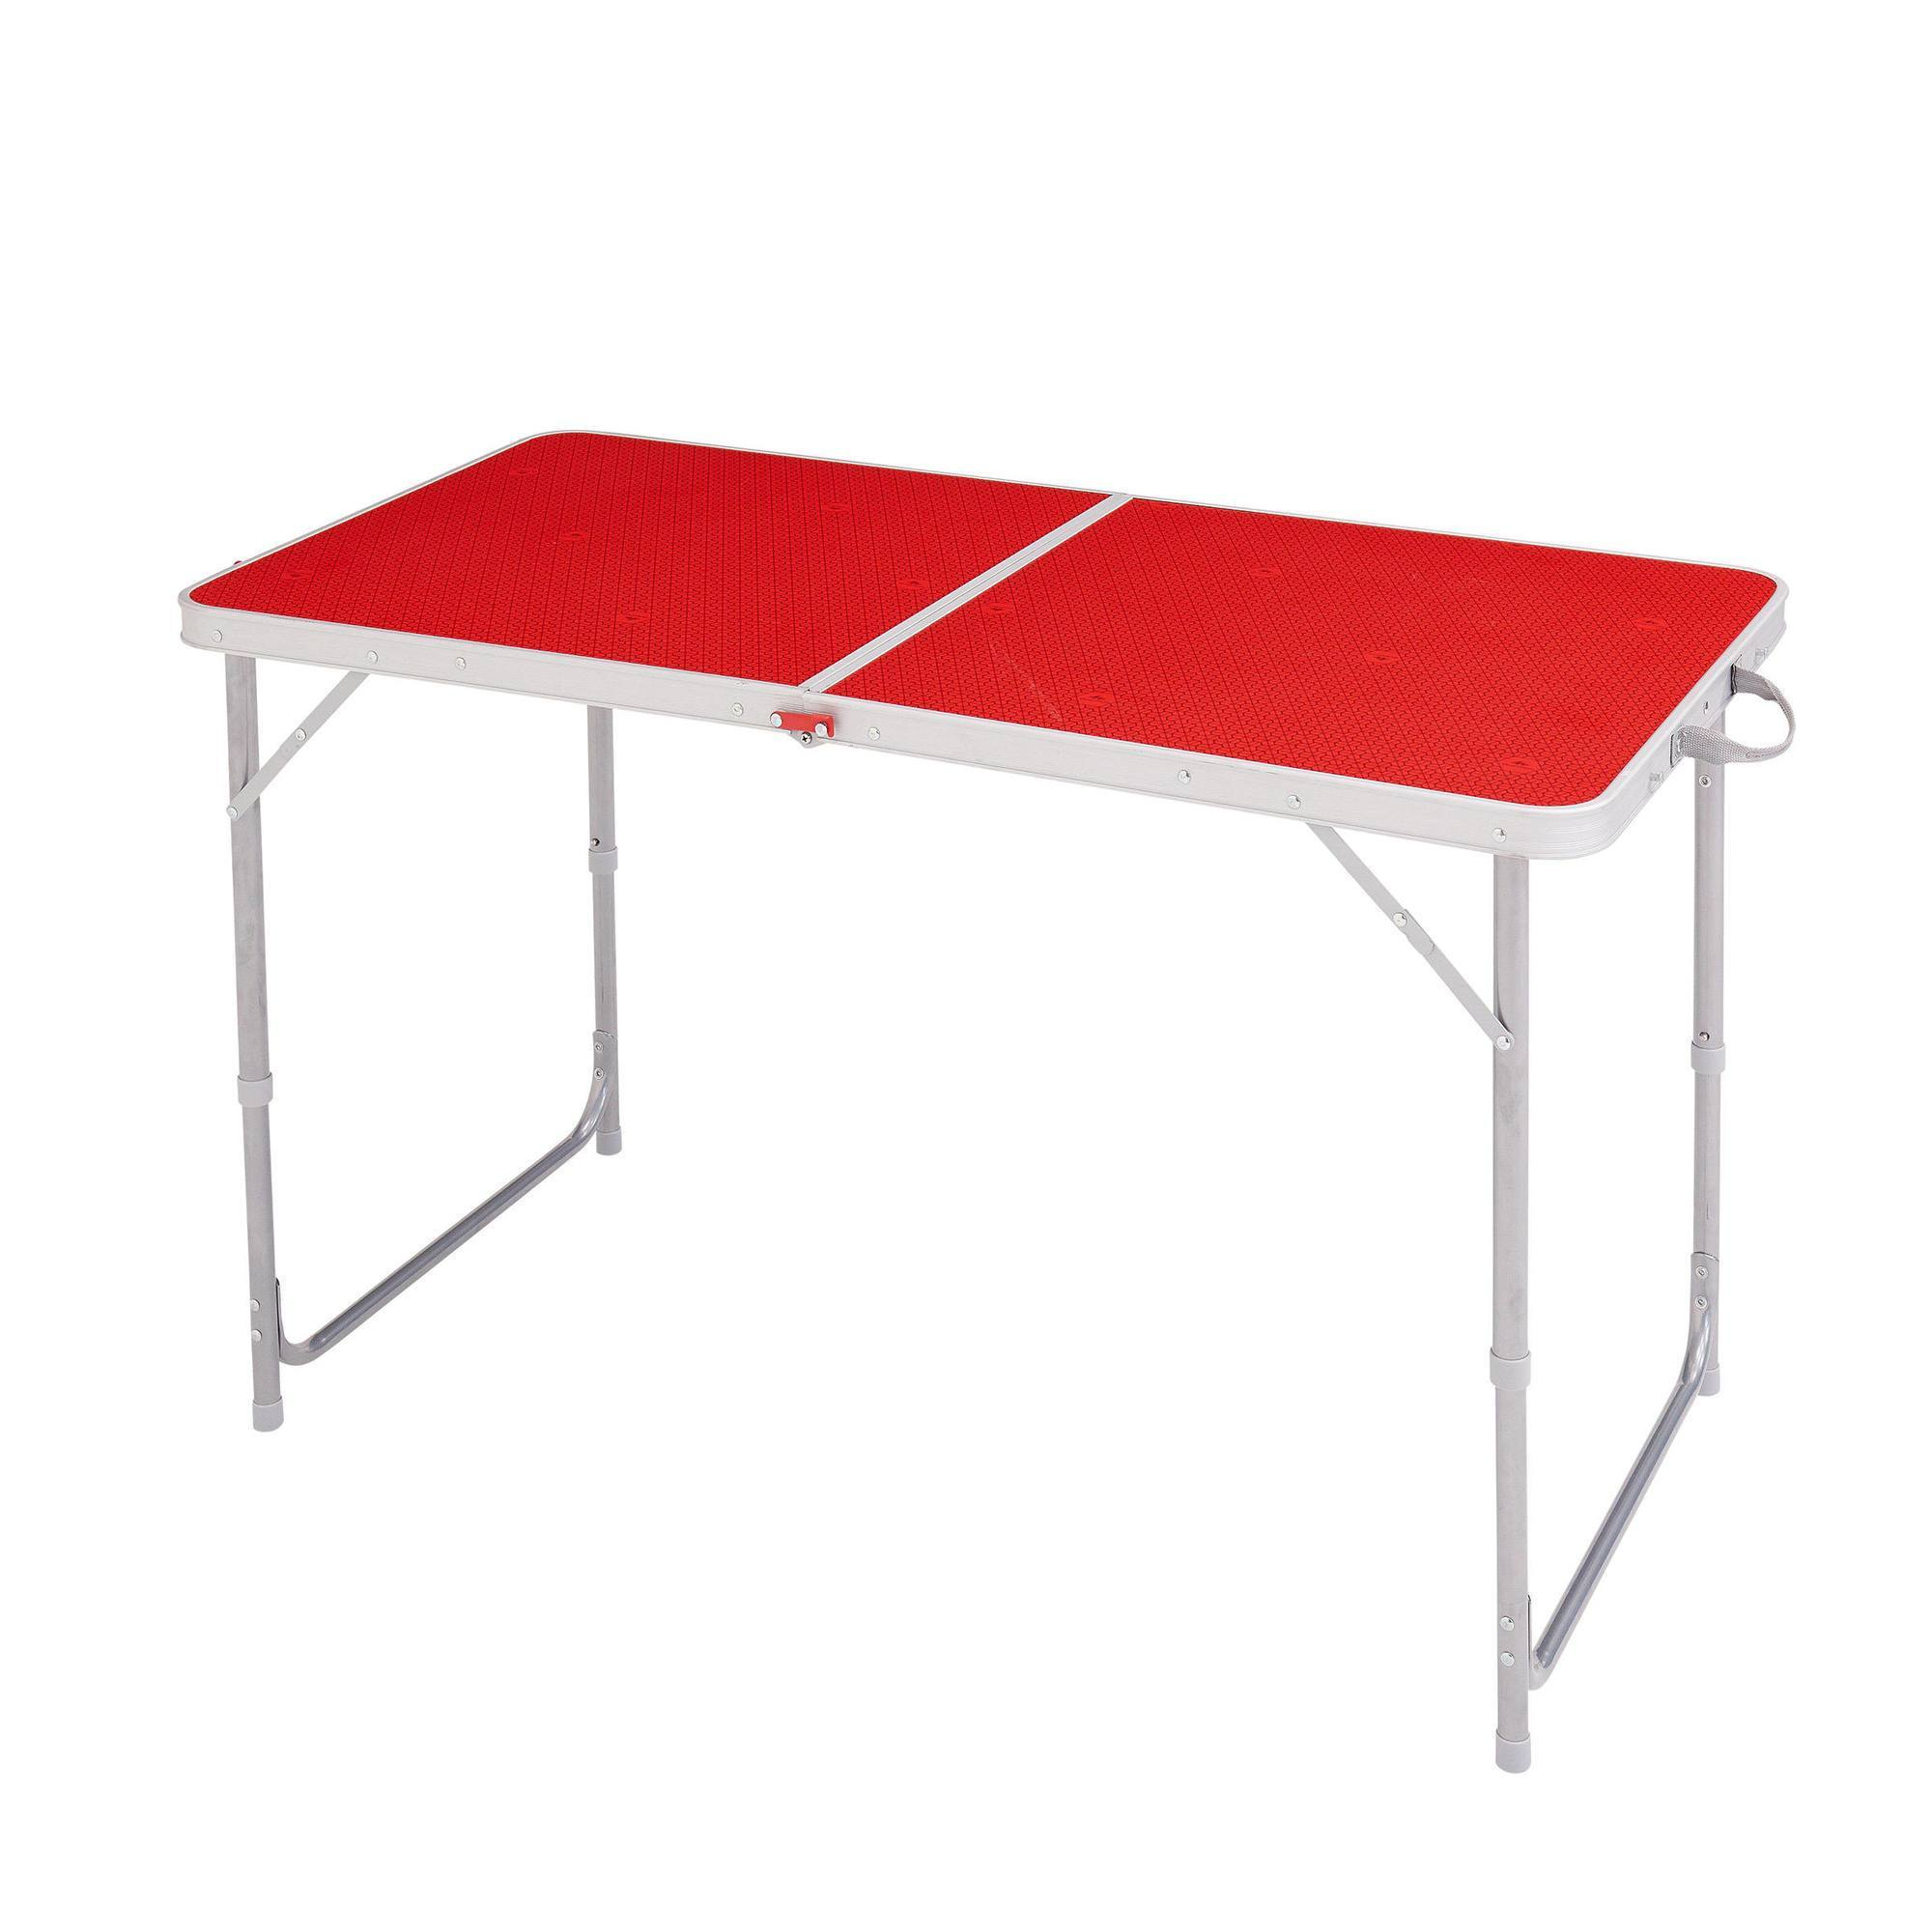 Table de camping 4 ou 6 personnes clubs collectivit s for Table 4 personnes